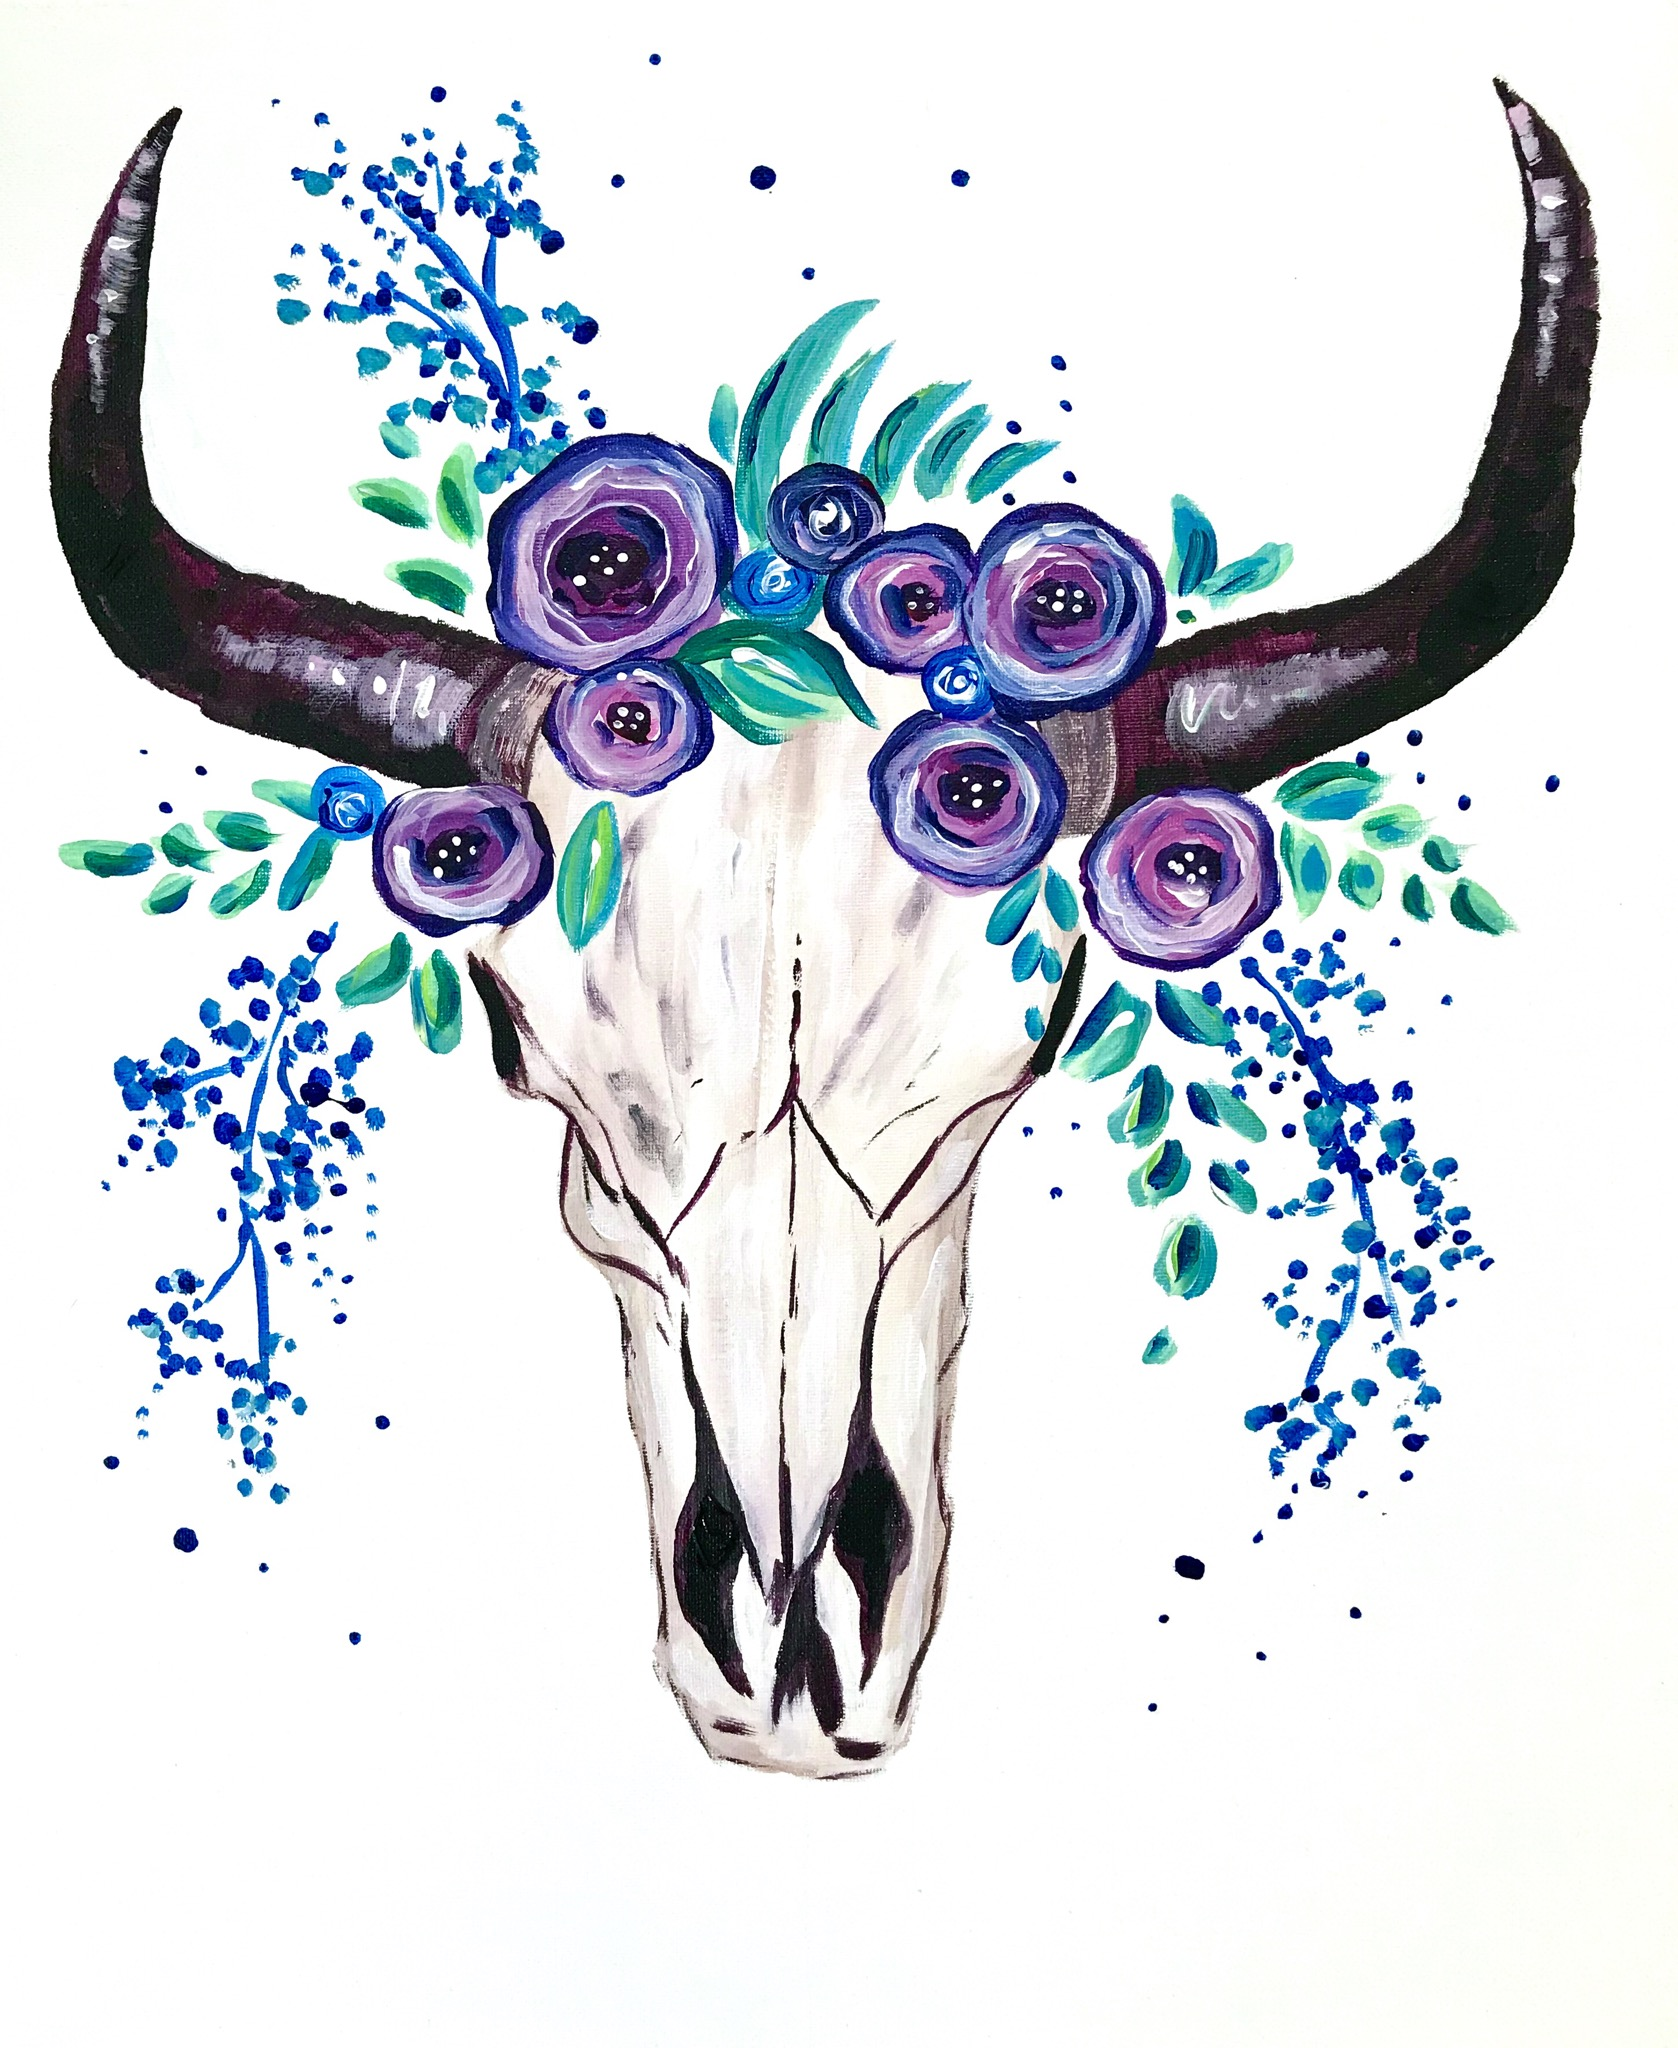 A Bull Skull Blossoms experience project by Yaymaker